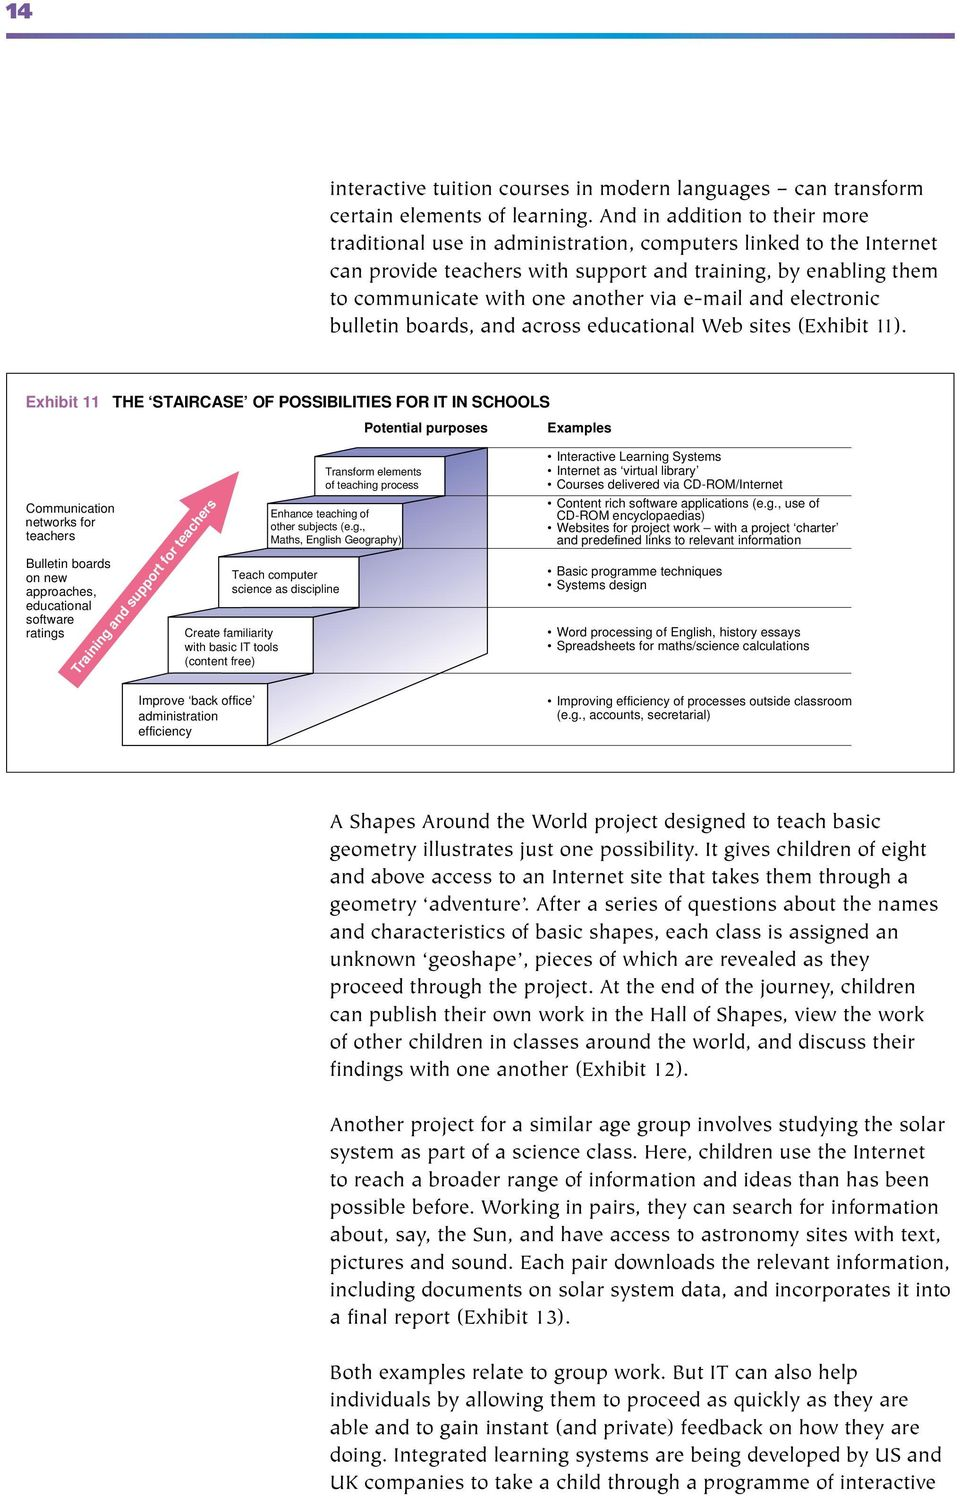 e-mail and electronic bulletin boards, and across educational Web sites (Exhibit 11).